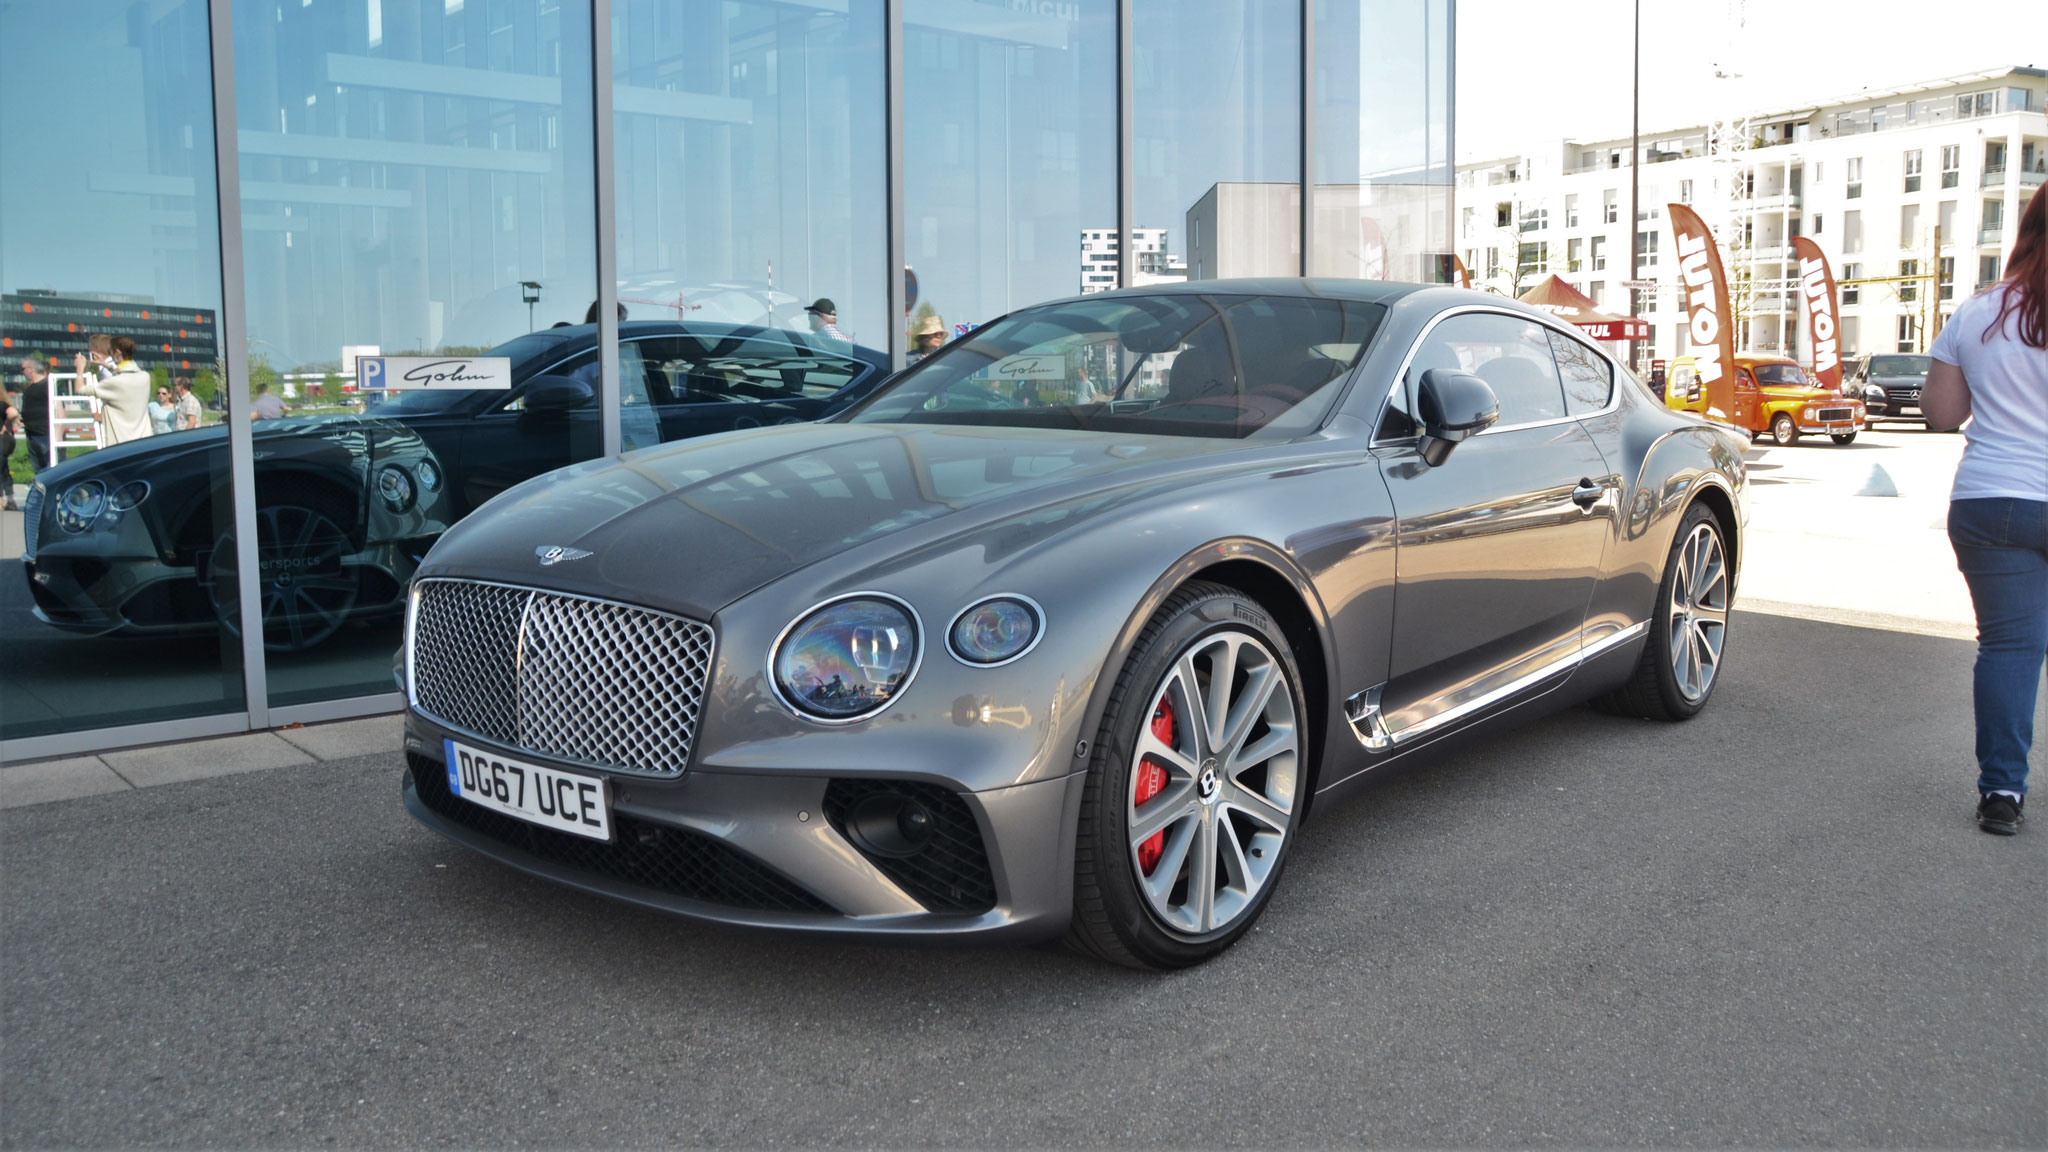 Bentley Continental GT - DG67-UCE (GB)